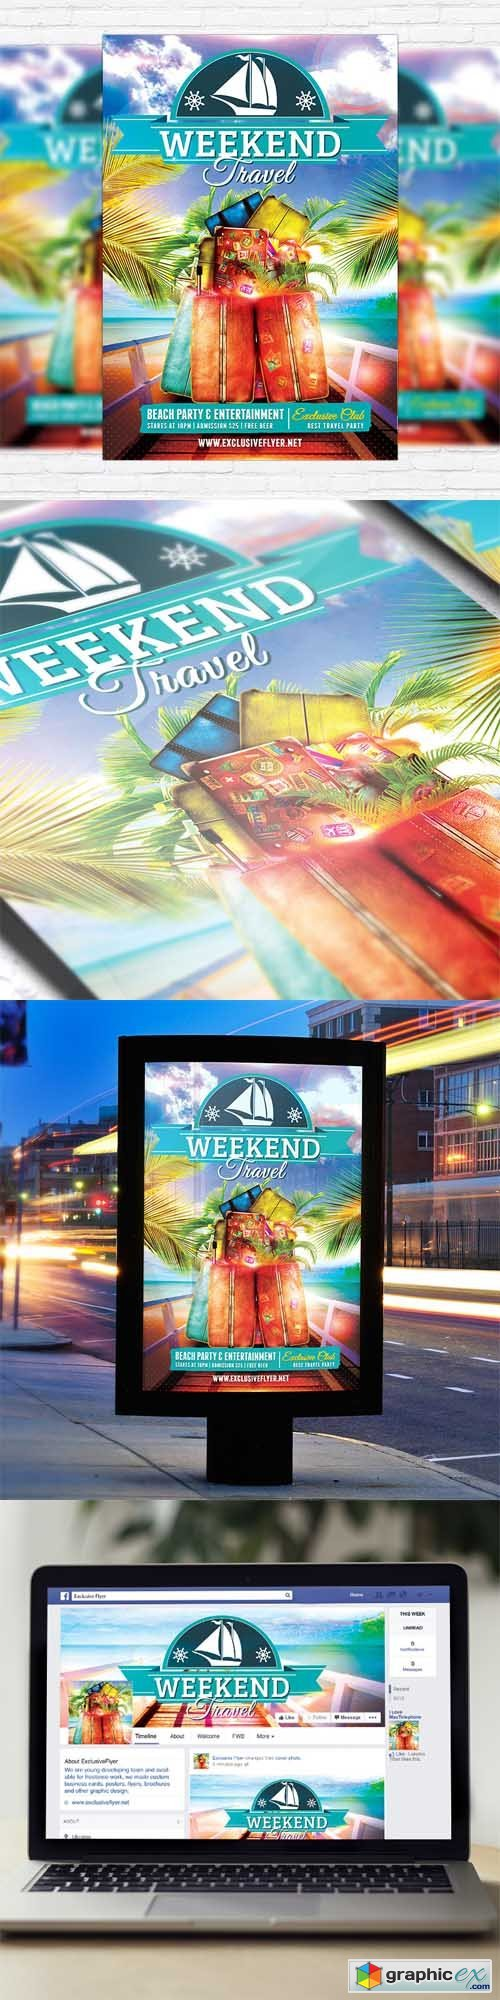 Travel Weekend - Flyer Template + Facebook Cover